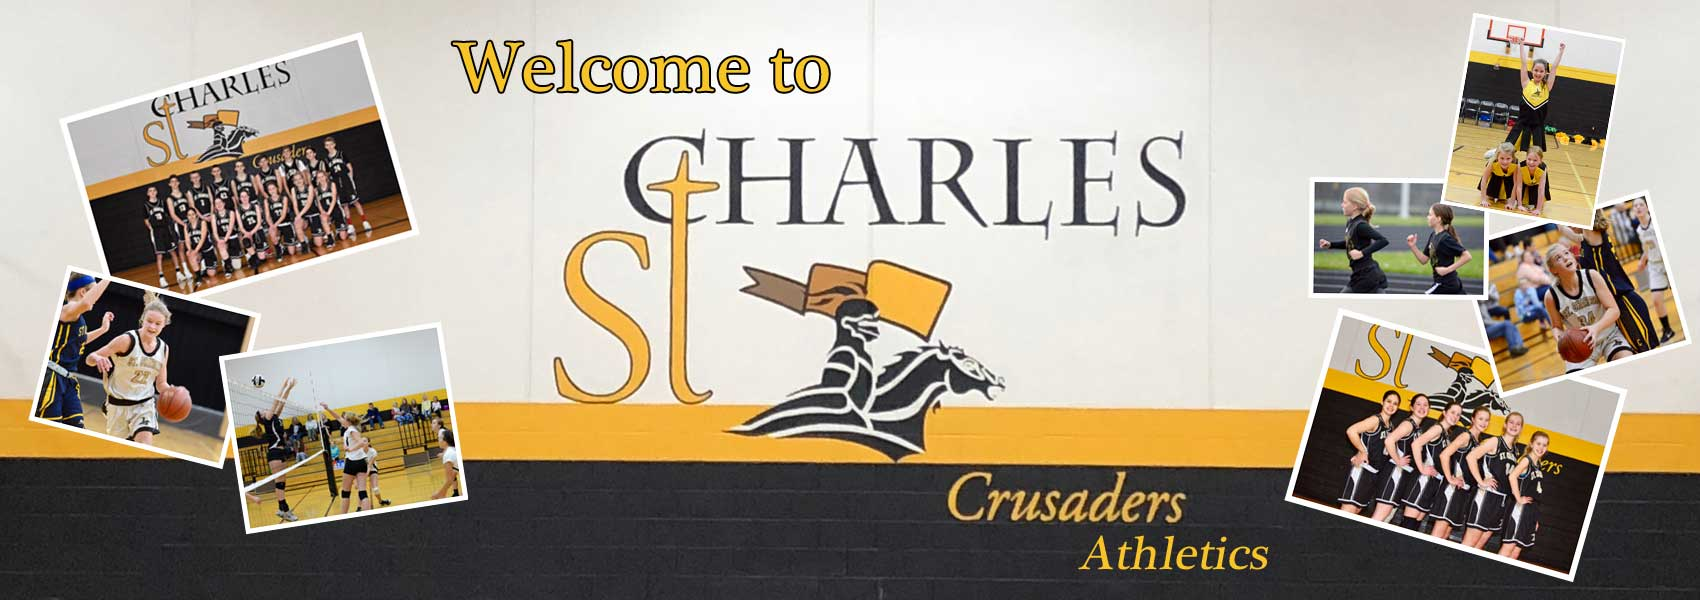 St. Charles Athletics welcomes you